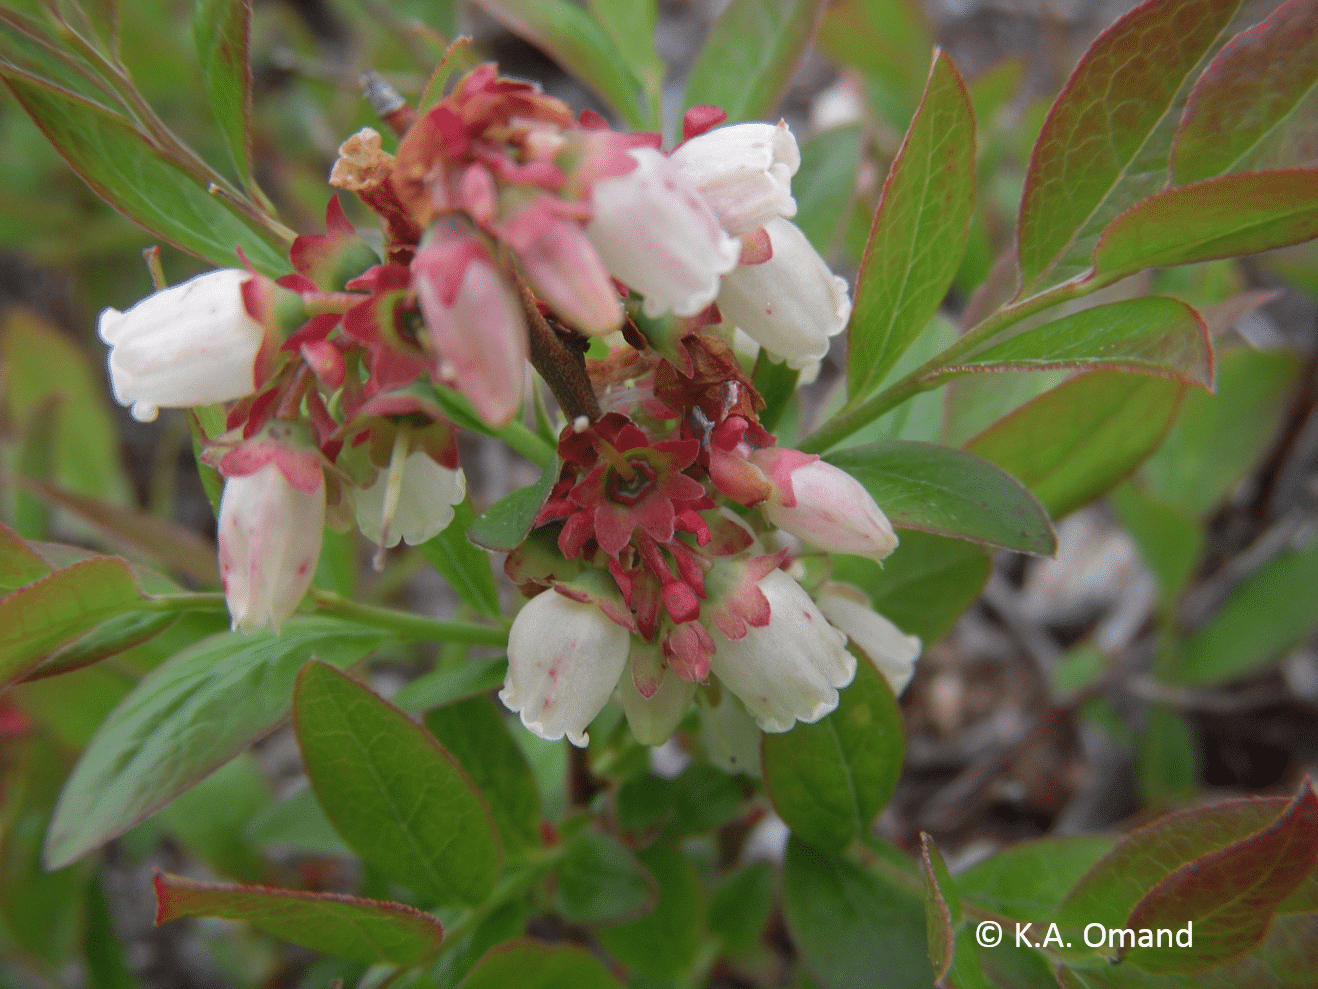 Bell-shaped flowers of lowbush blueberry, a related species of Vaccinium found in drier habitats.